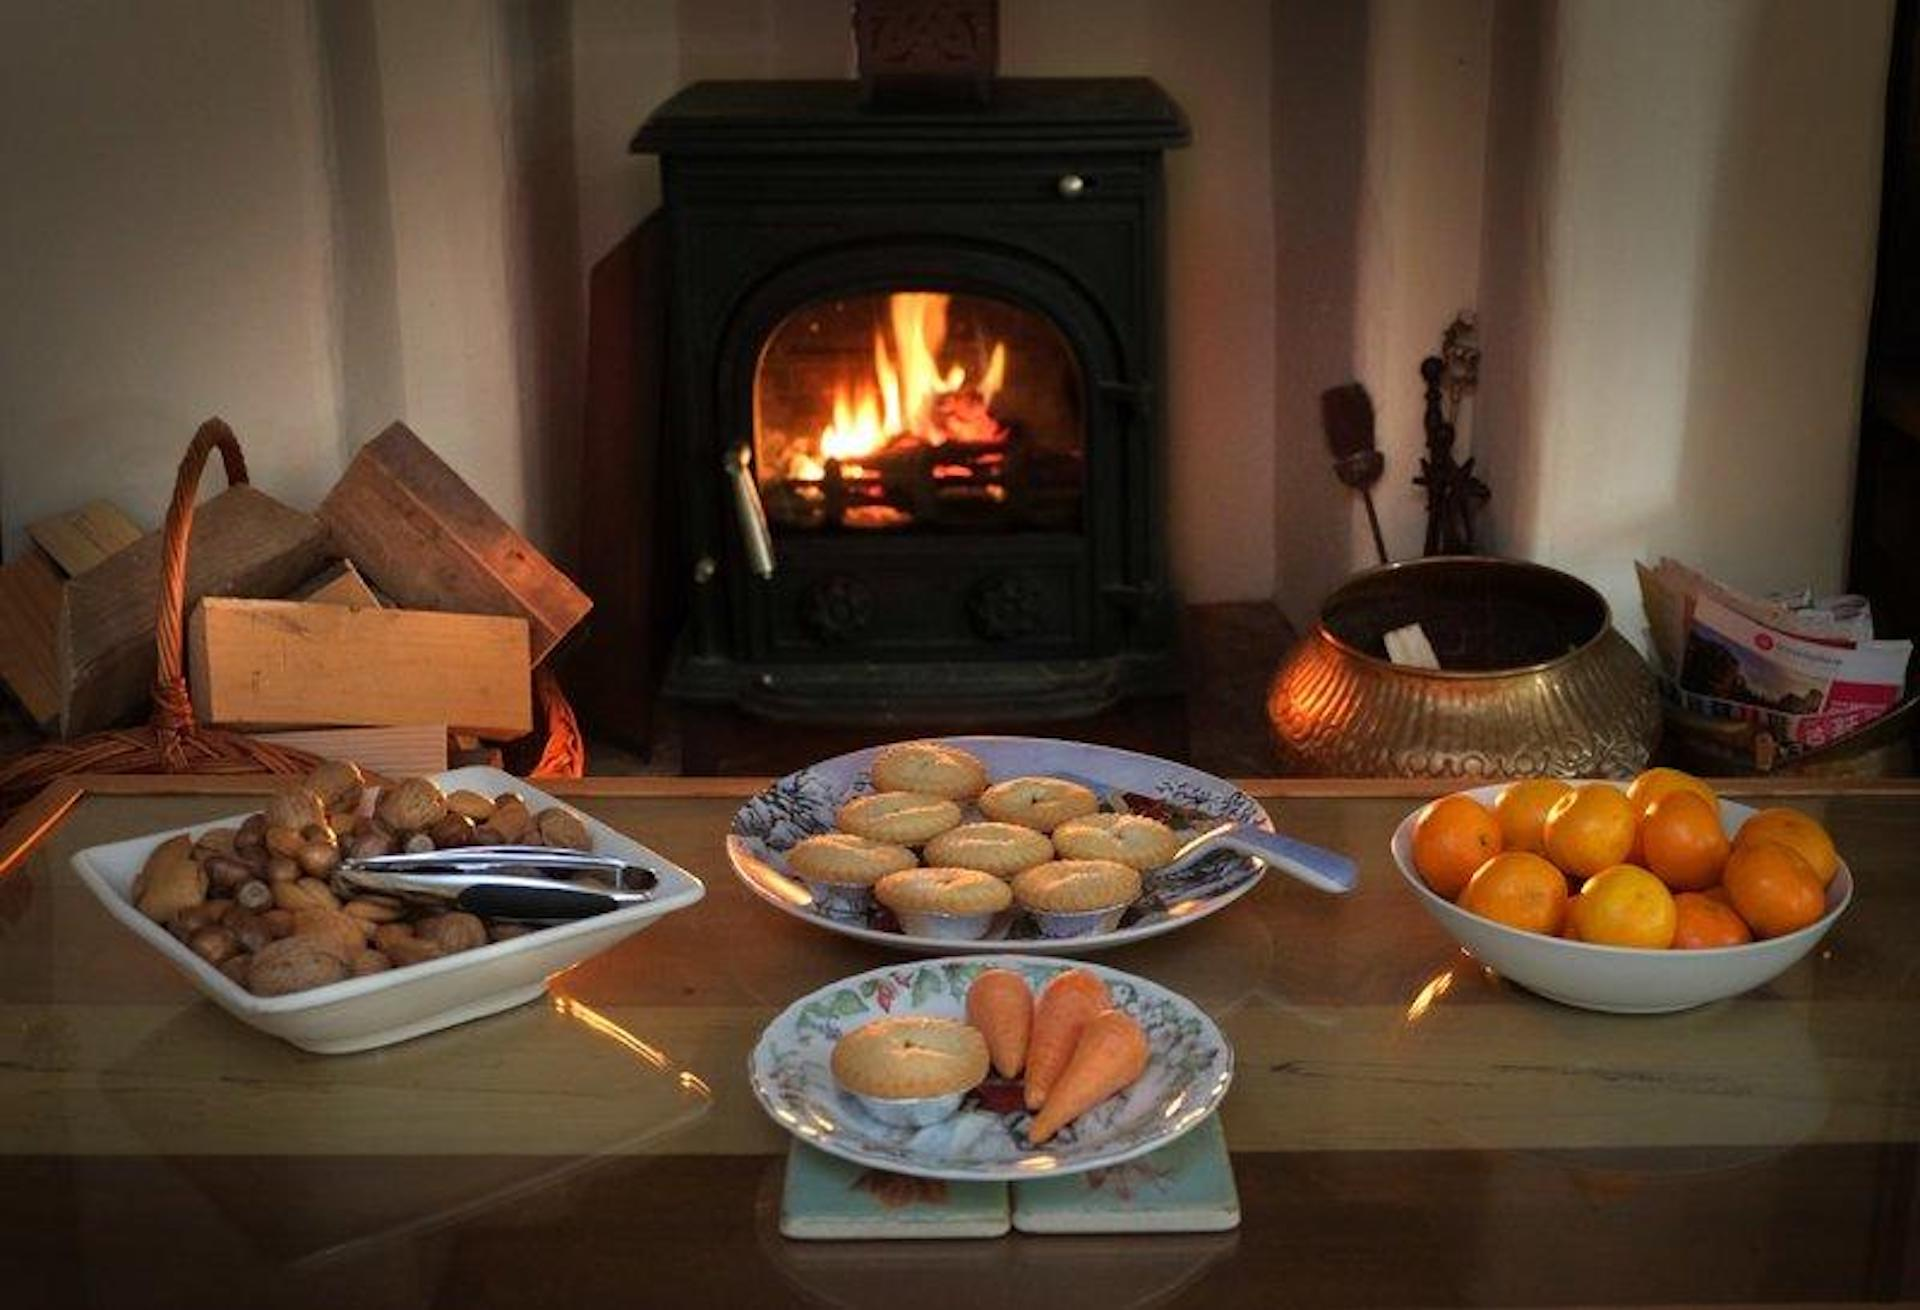 A feast for Father Christmas. in front of a burning coal fire a table is lined with plates filled with mince pies, fruit, nuts and a carrot for the reindeer.